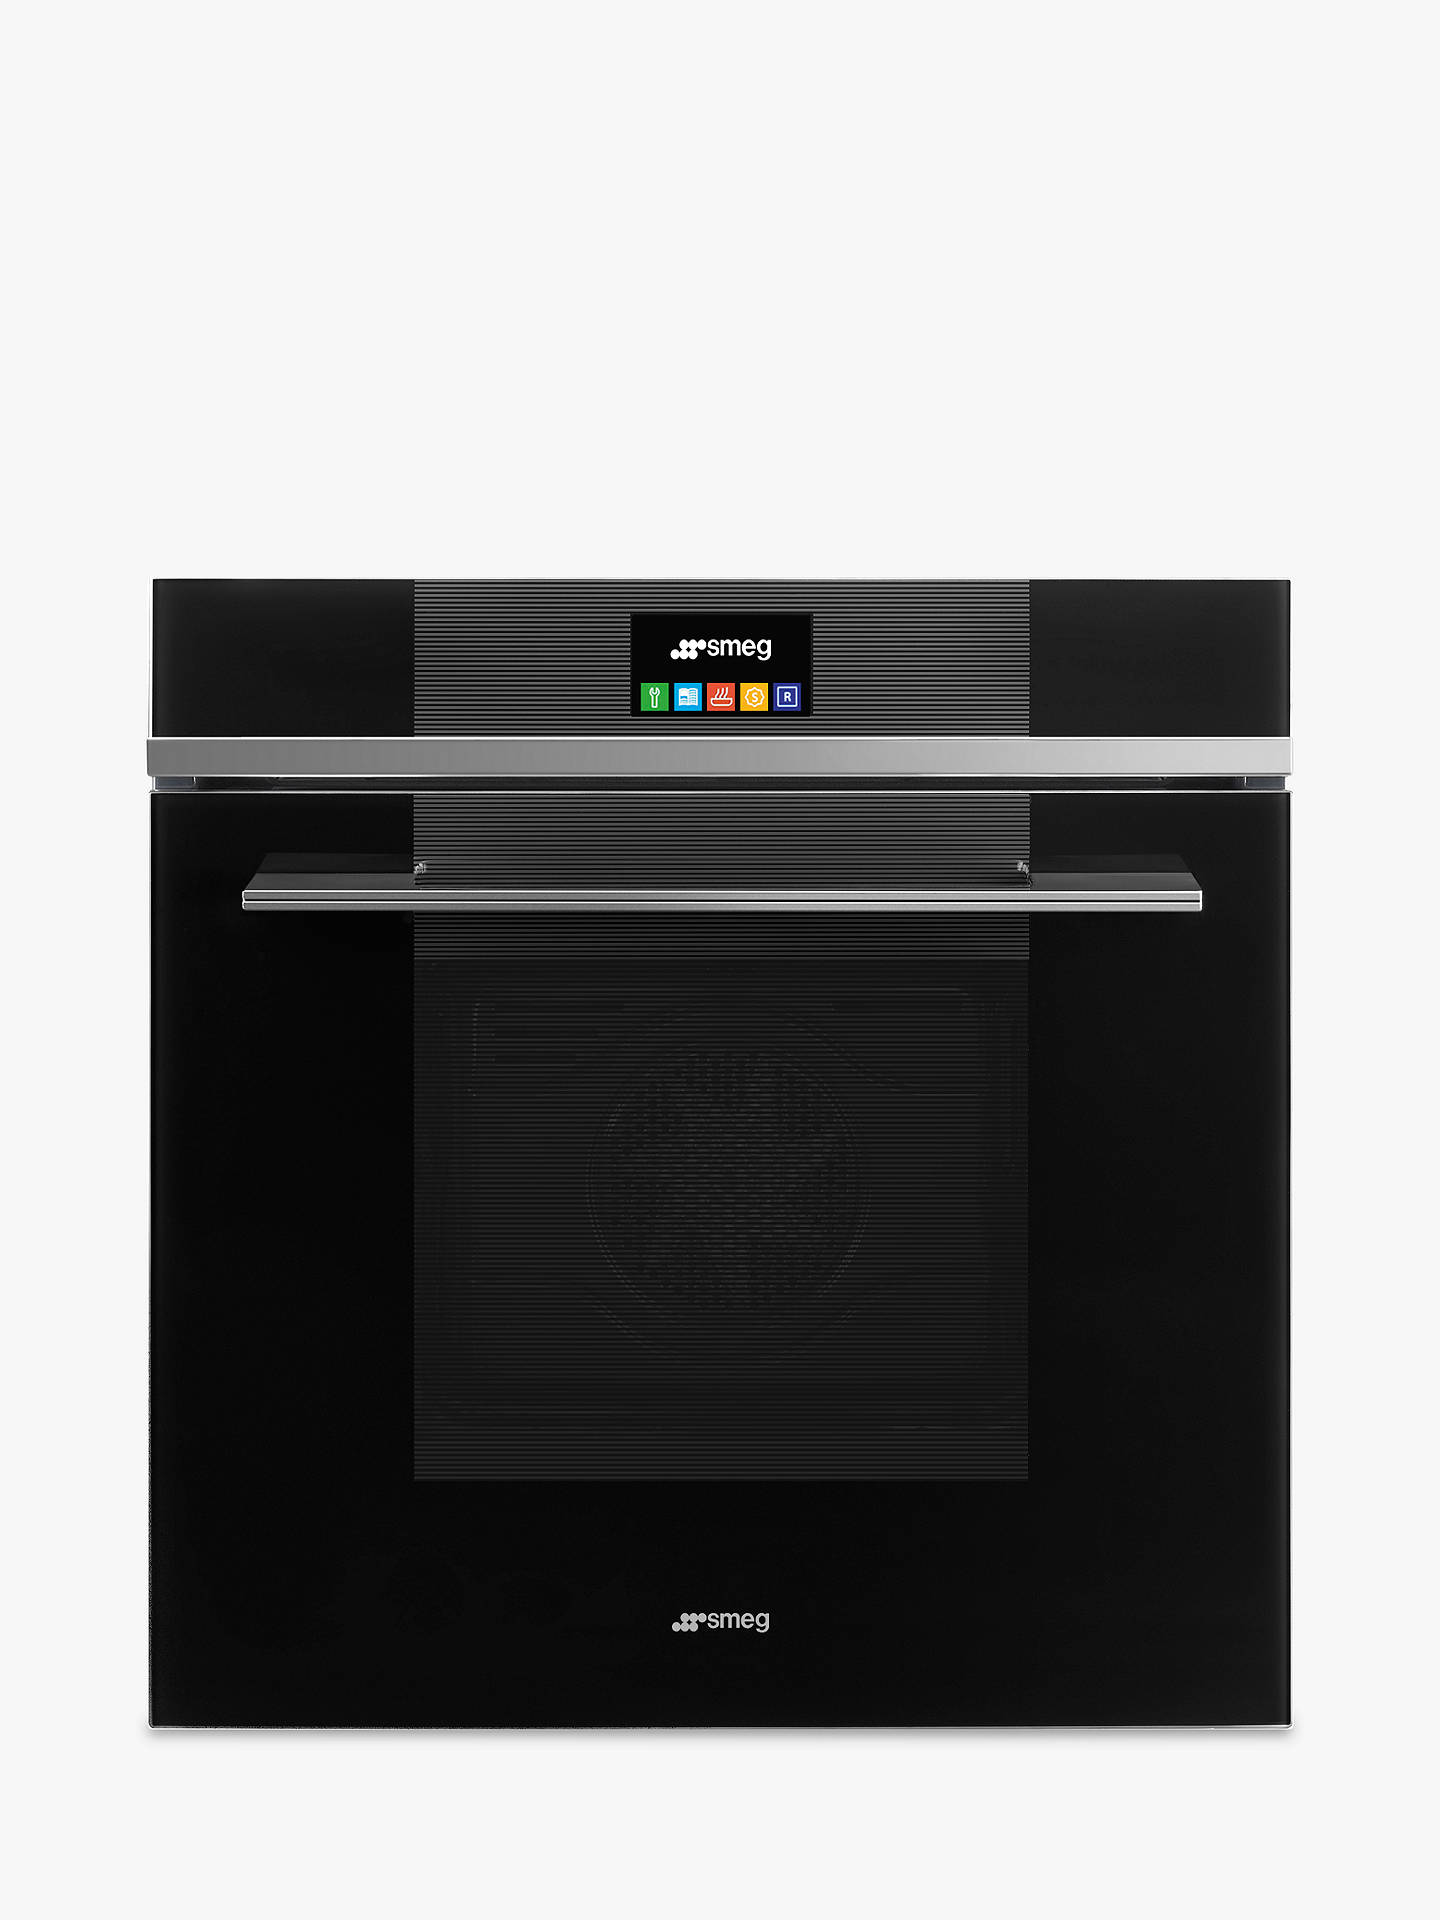 BuySmeg SFP6104TVN Linea Built-In Pyrolytic Single Oven with LCD Touch Display, Black Glass Online at johnlewis.com